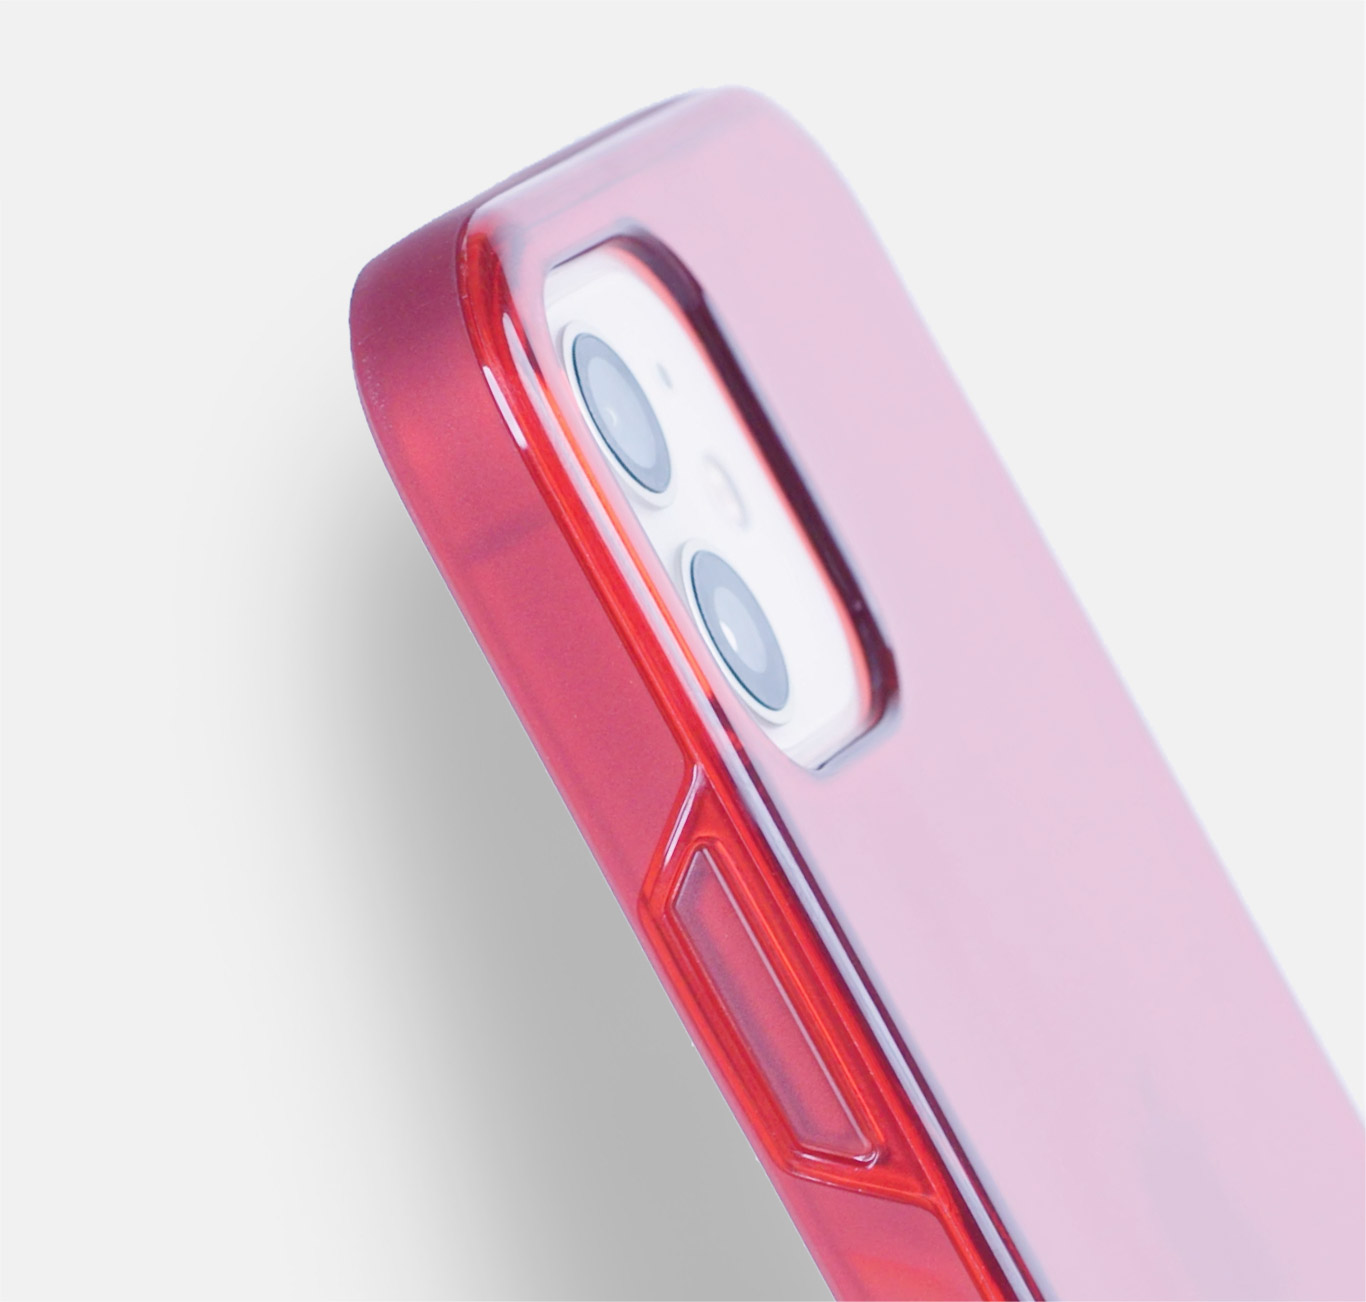 BodyGuardz phone case showcasing our attention to detail.